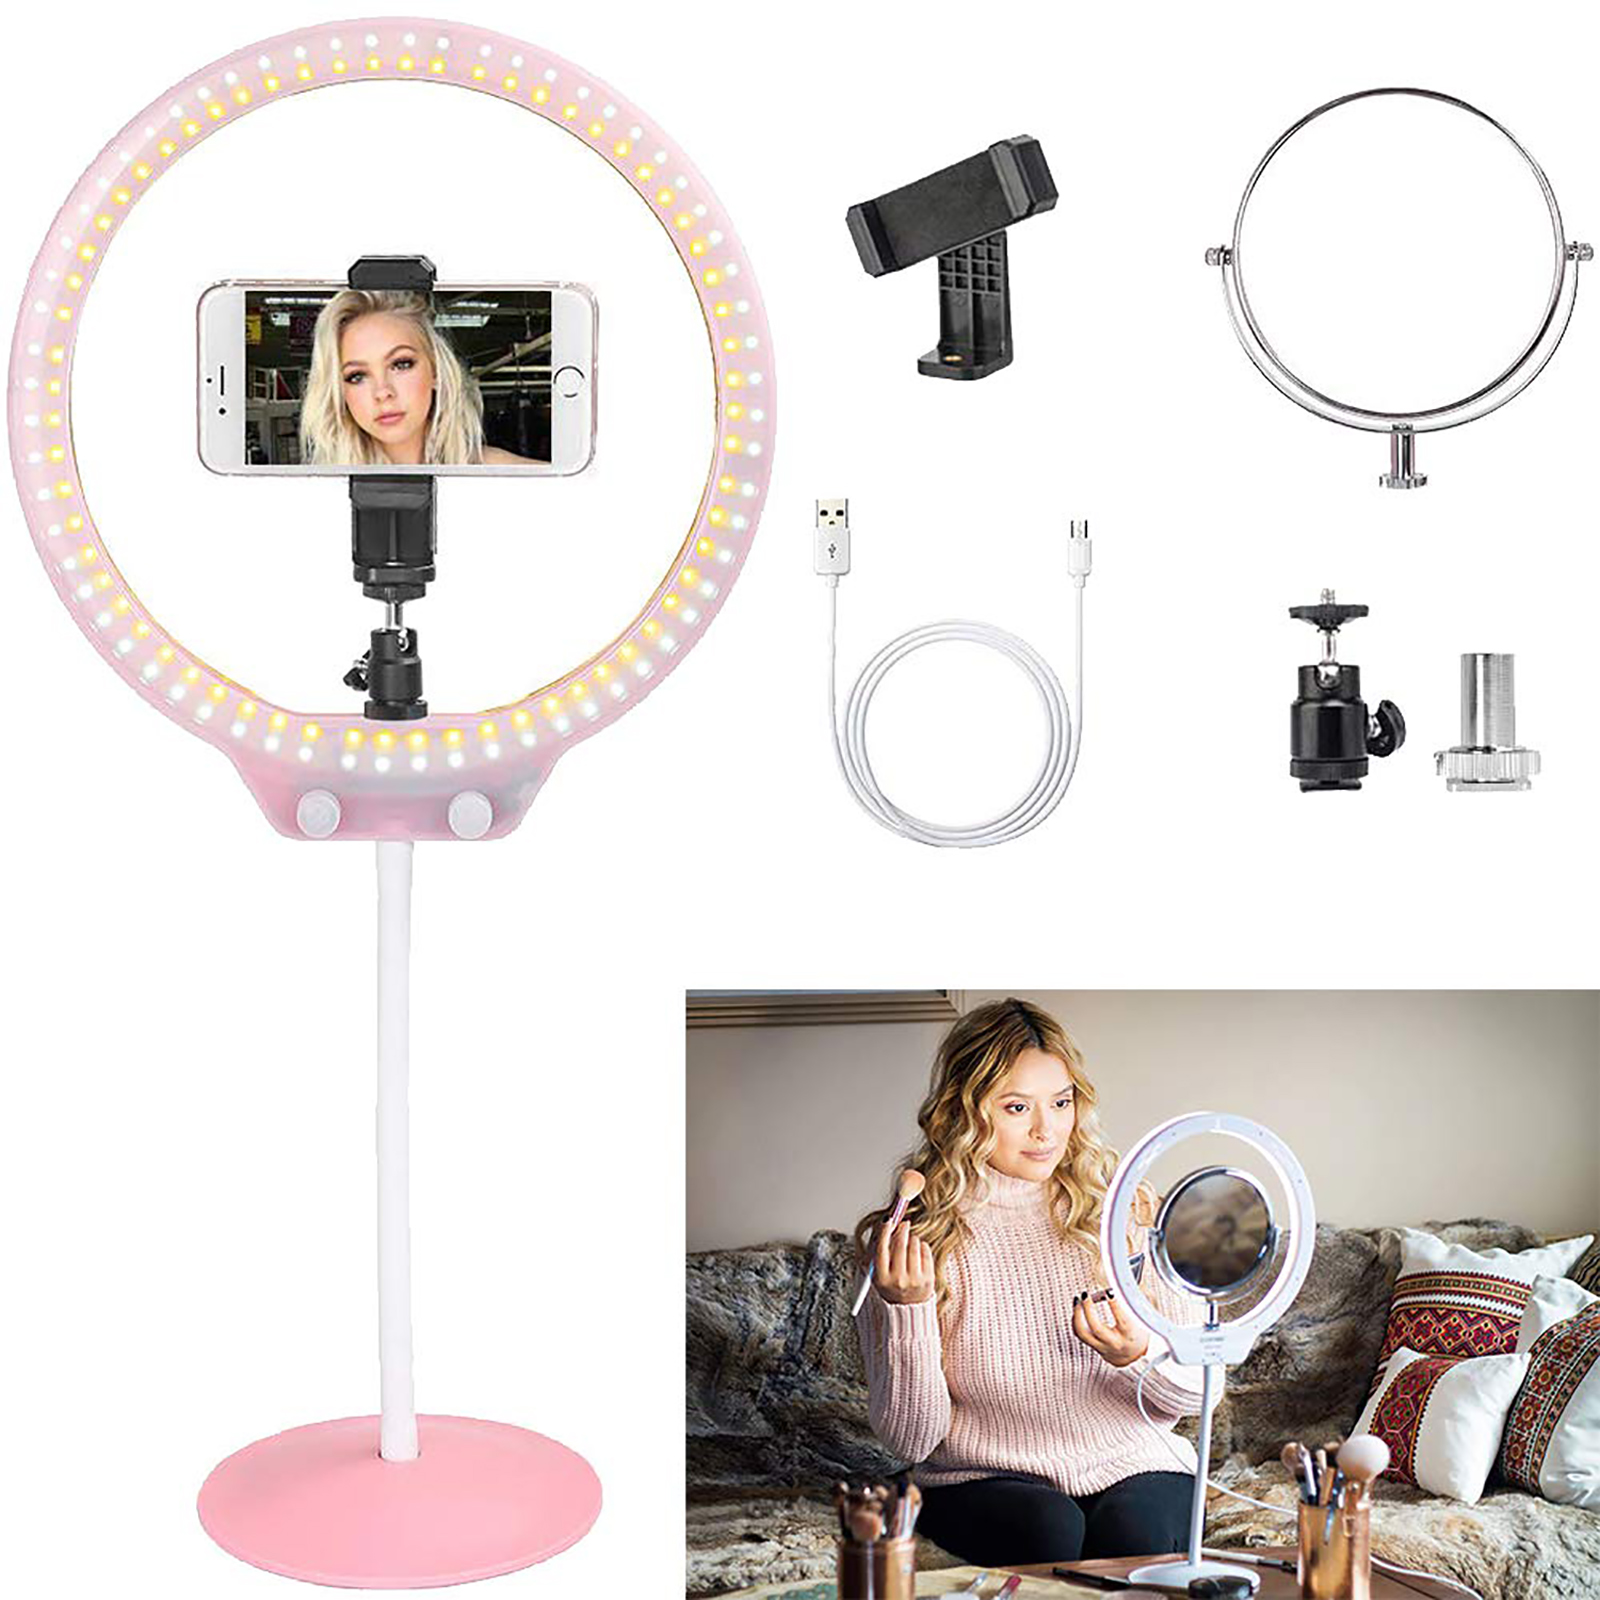 ZOMEI LED Selfie Ring Light Photographic Lighting Camera Photo Video Studio Flexible Table Ringlight with Stand